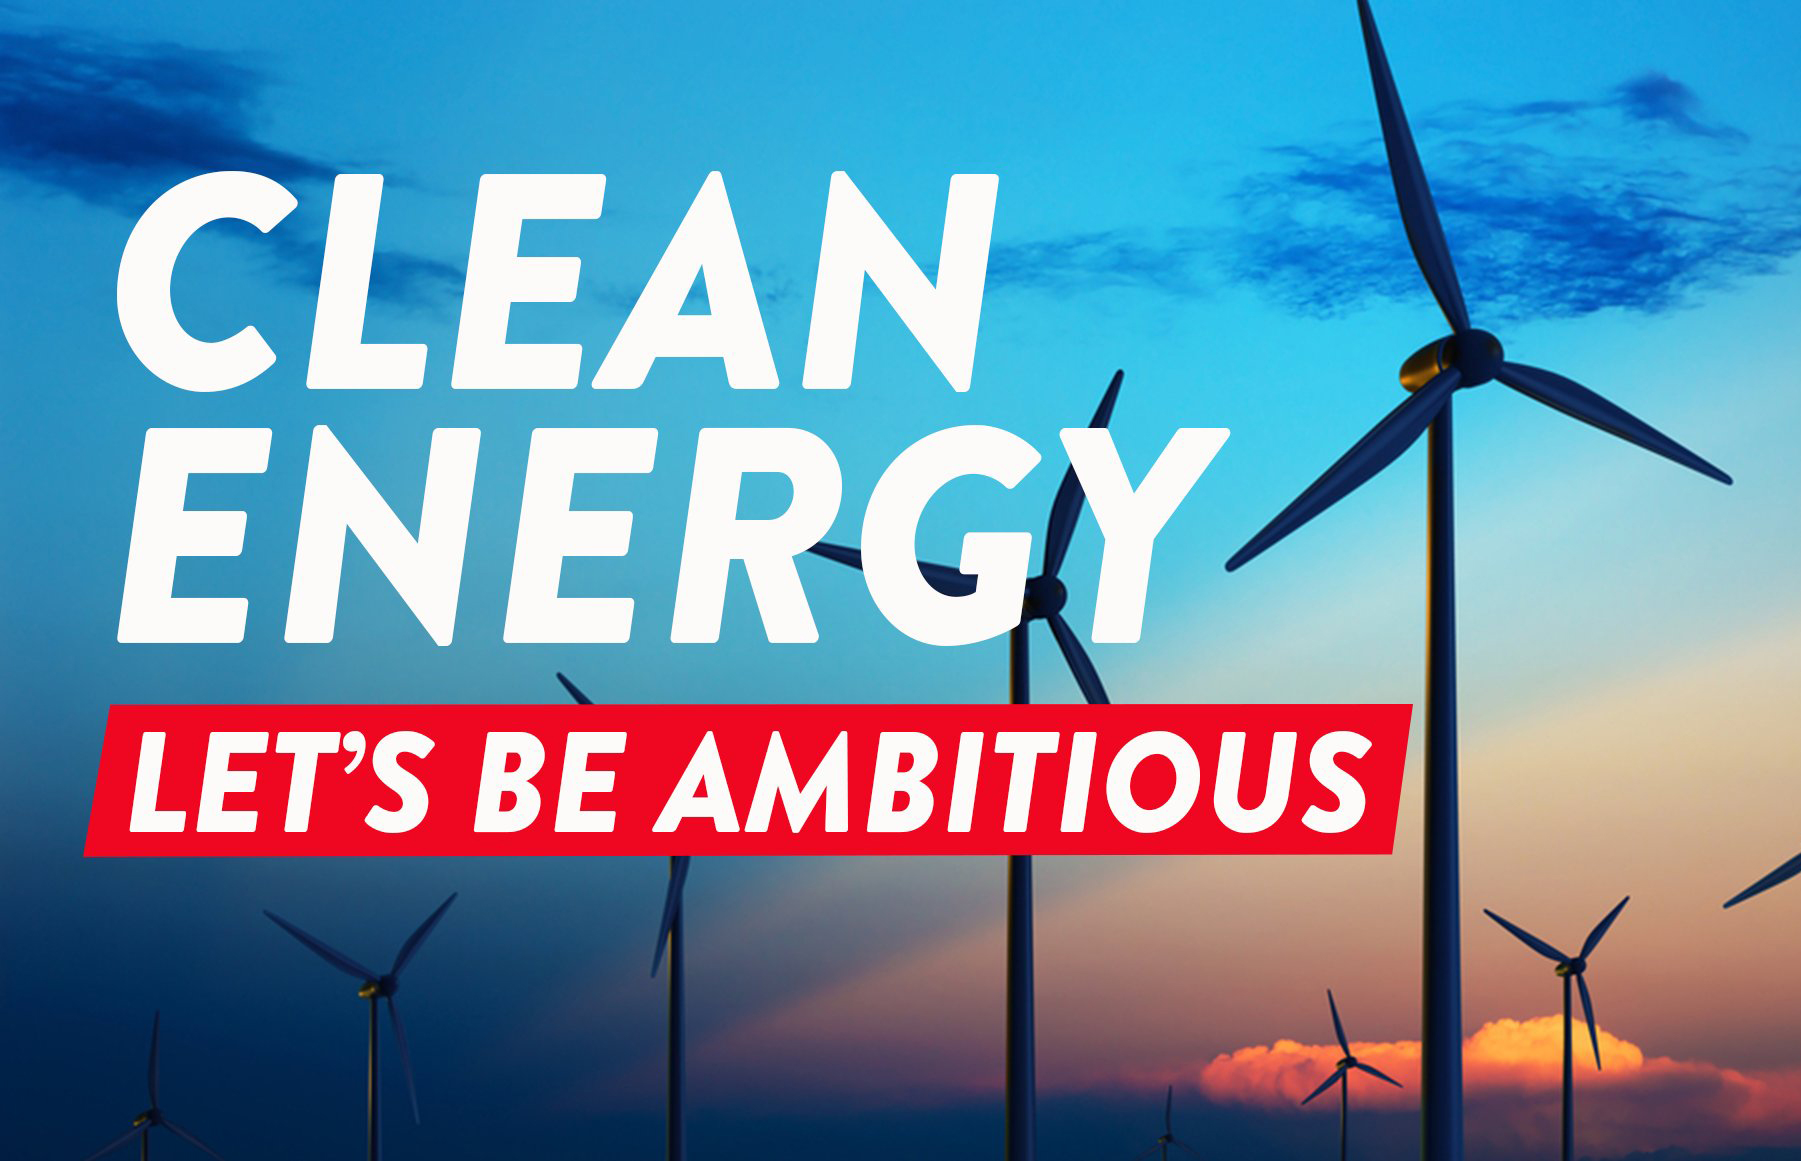 Writing Clean Energy - let's be ambitious over blue background and wind turbines